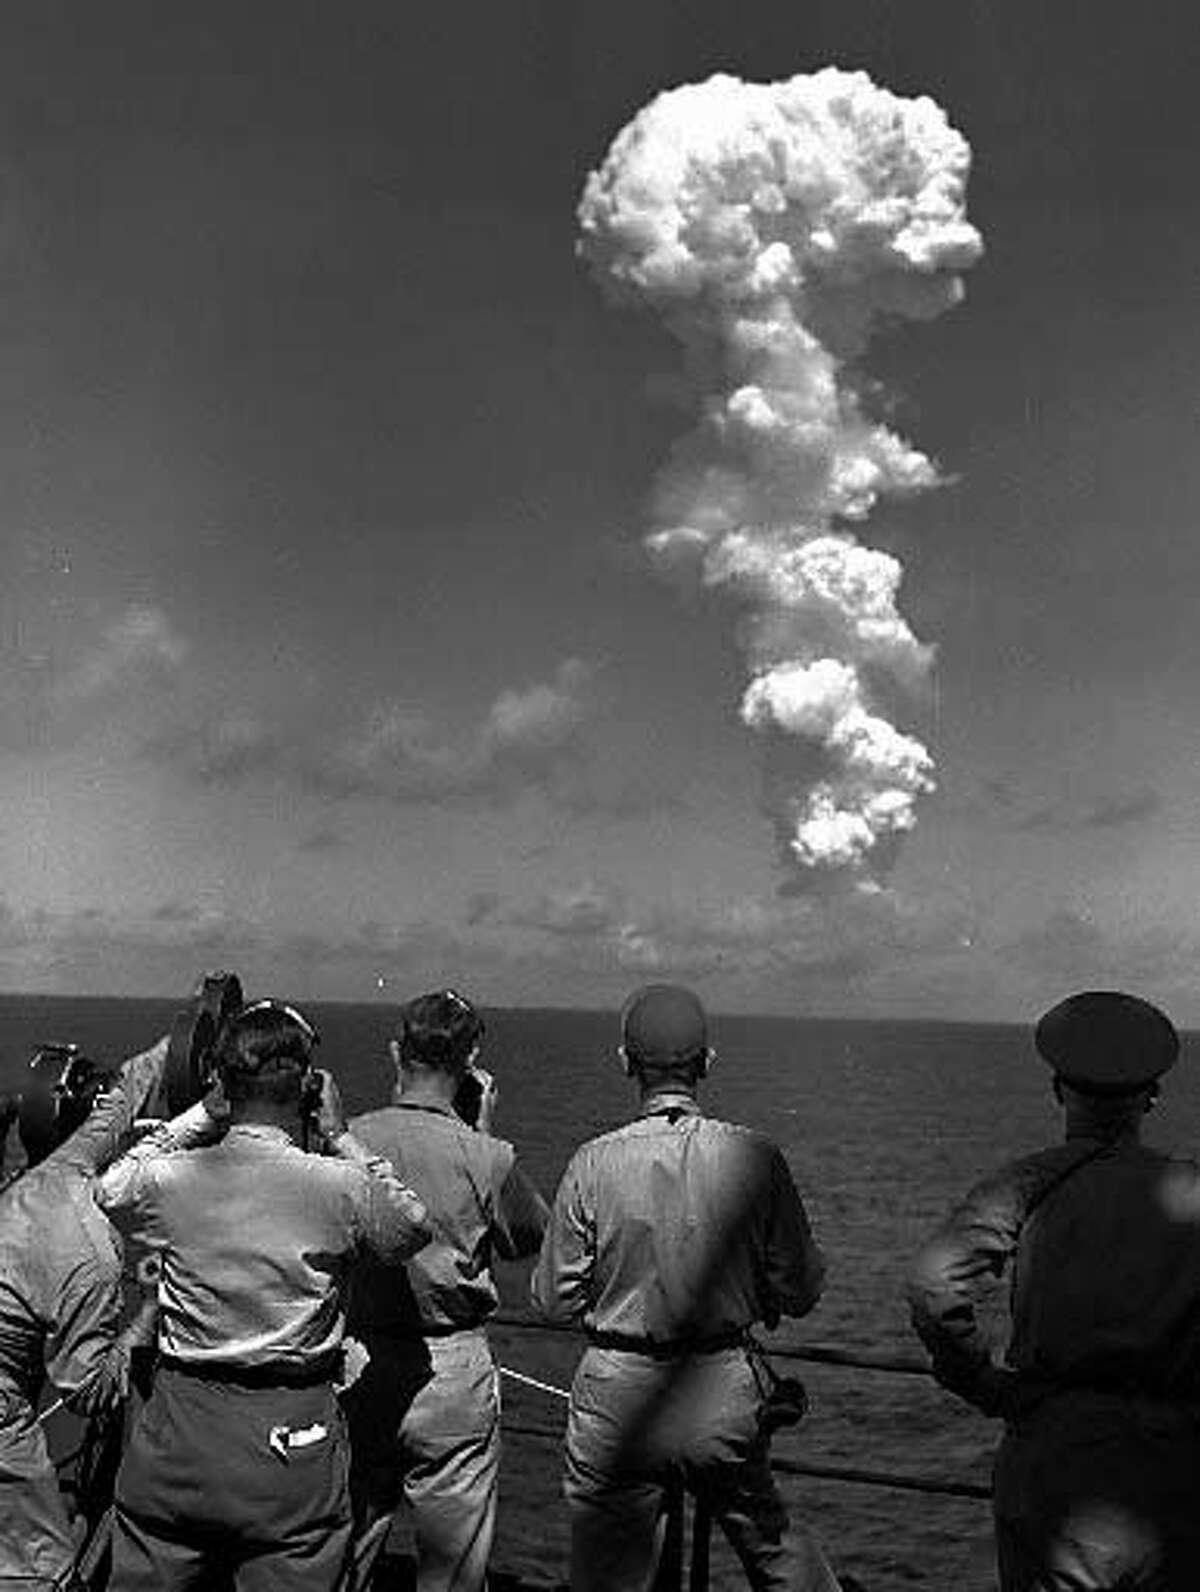 Observers aboard the Navy command ship Mount McKinley watch the mushroom cloud from the atomic bomb test on Bikini Atoll in the Marshall Islands on July 1, 1946. Associated Press photo, 1946, by Jack Rice